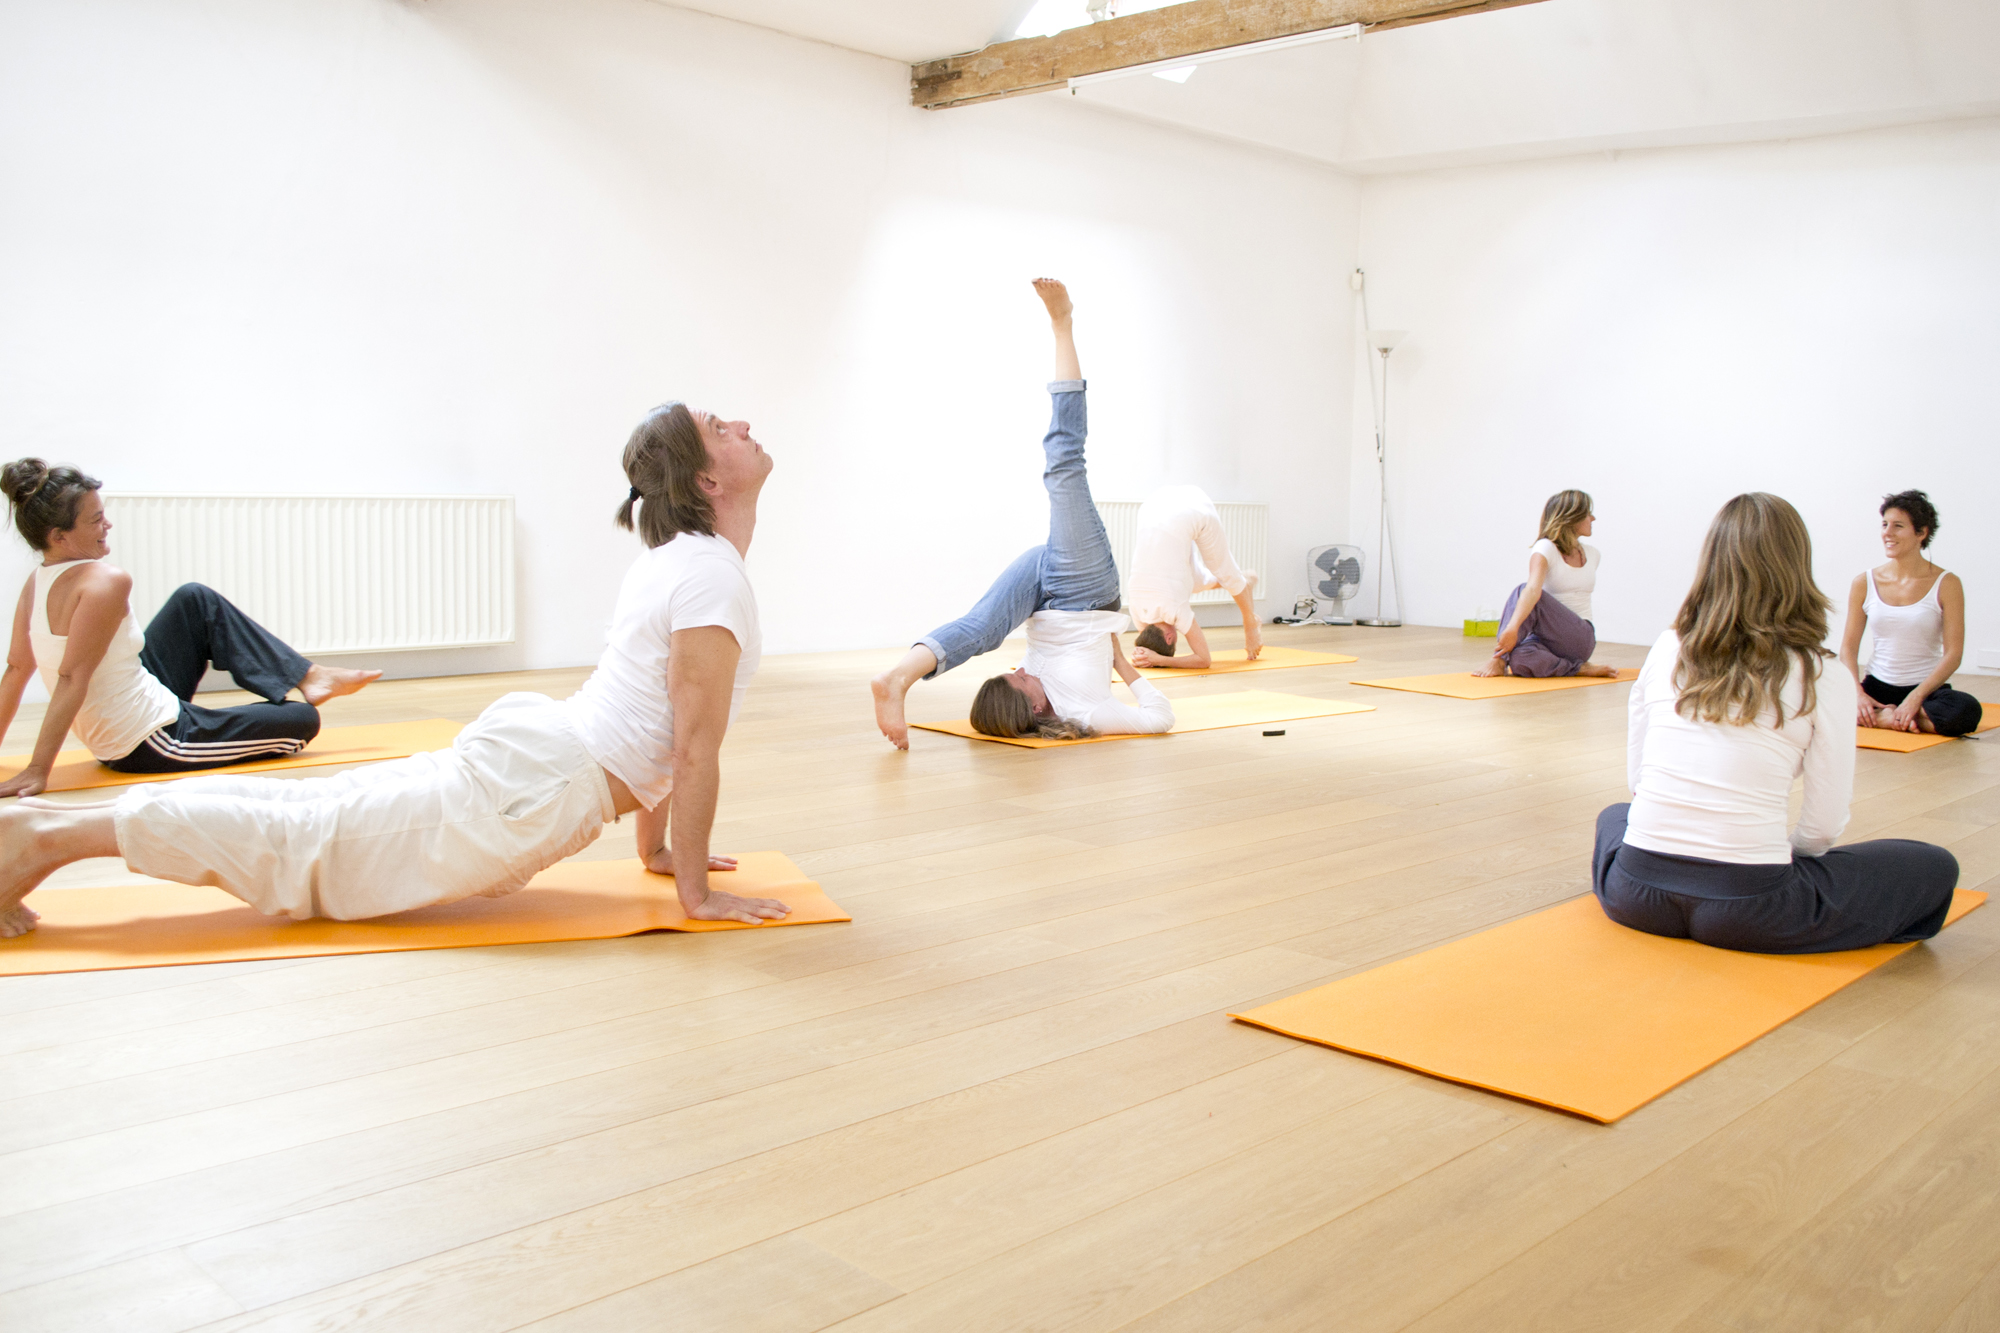 The Best Yoga Classes Amp Studios In Brussels